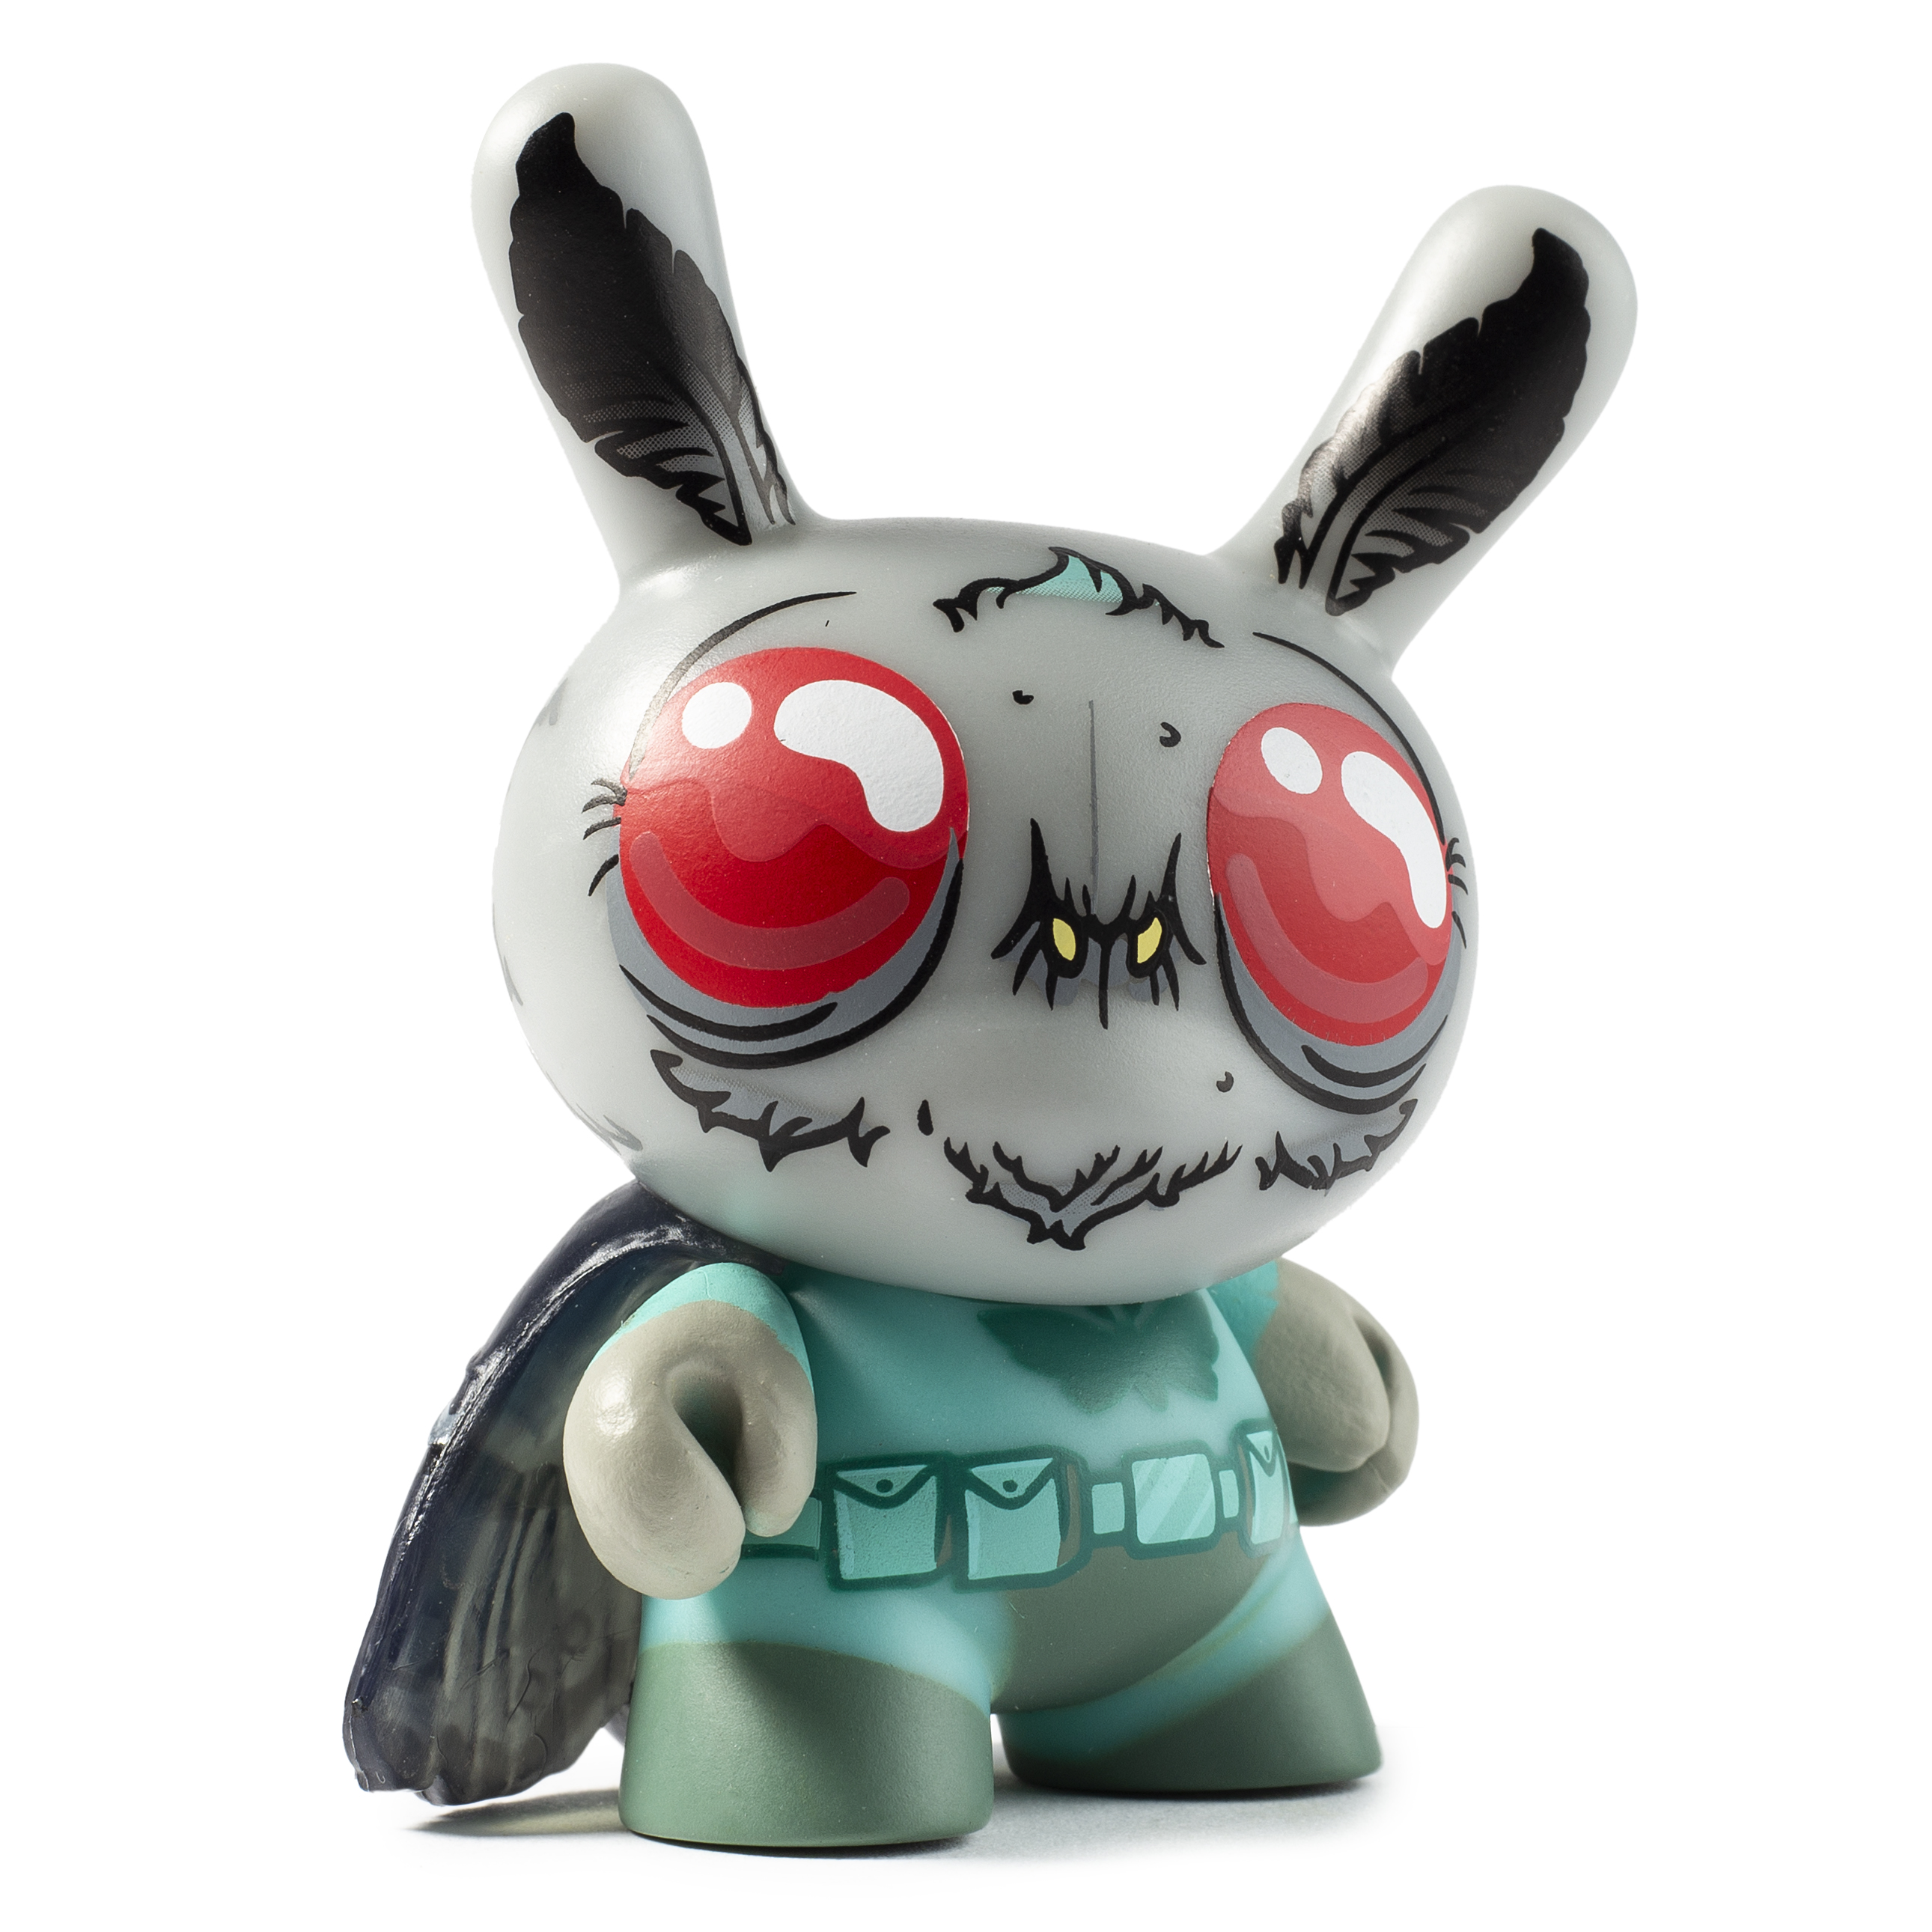 Kidrobot x City Cryptid Dunny Art Mini Series Montman Dunny by Chris Ryniak